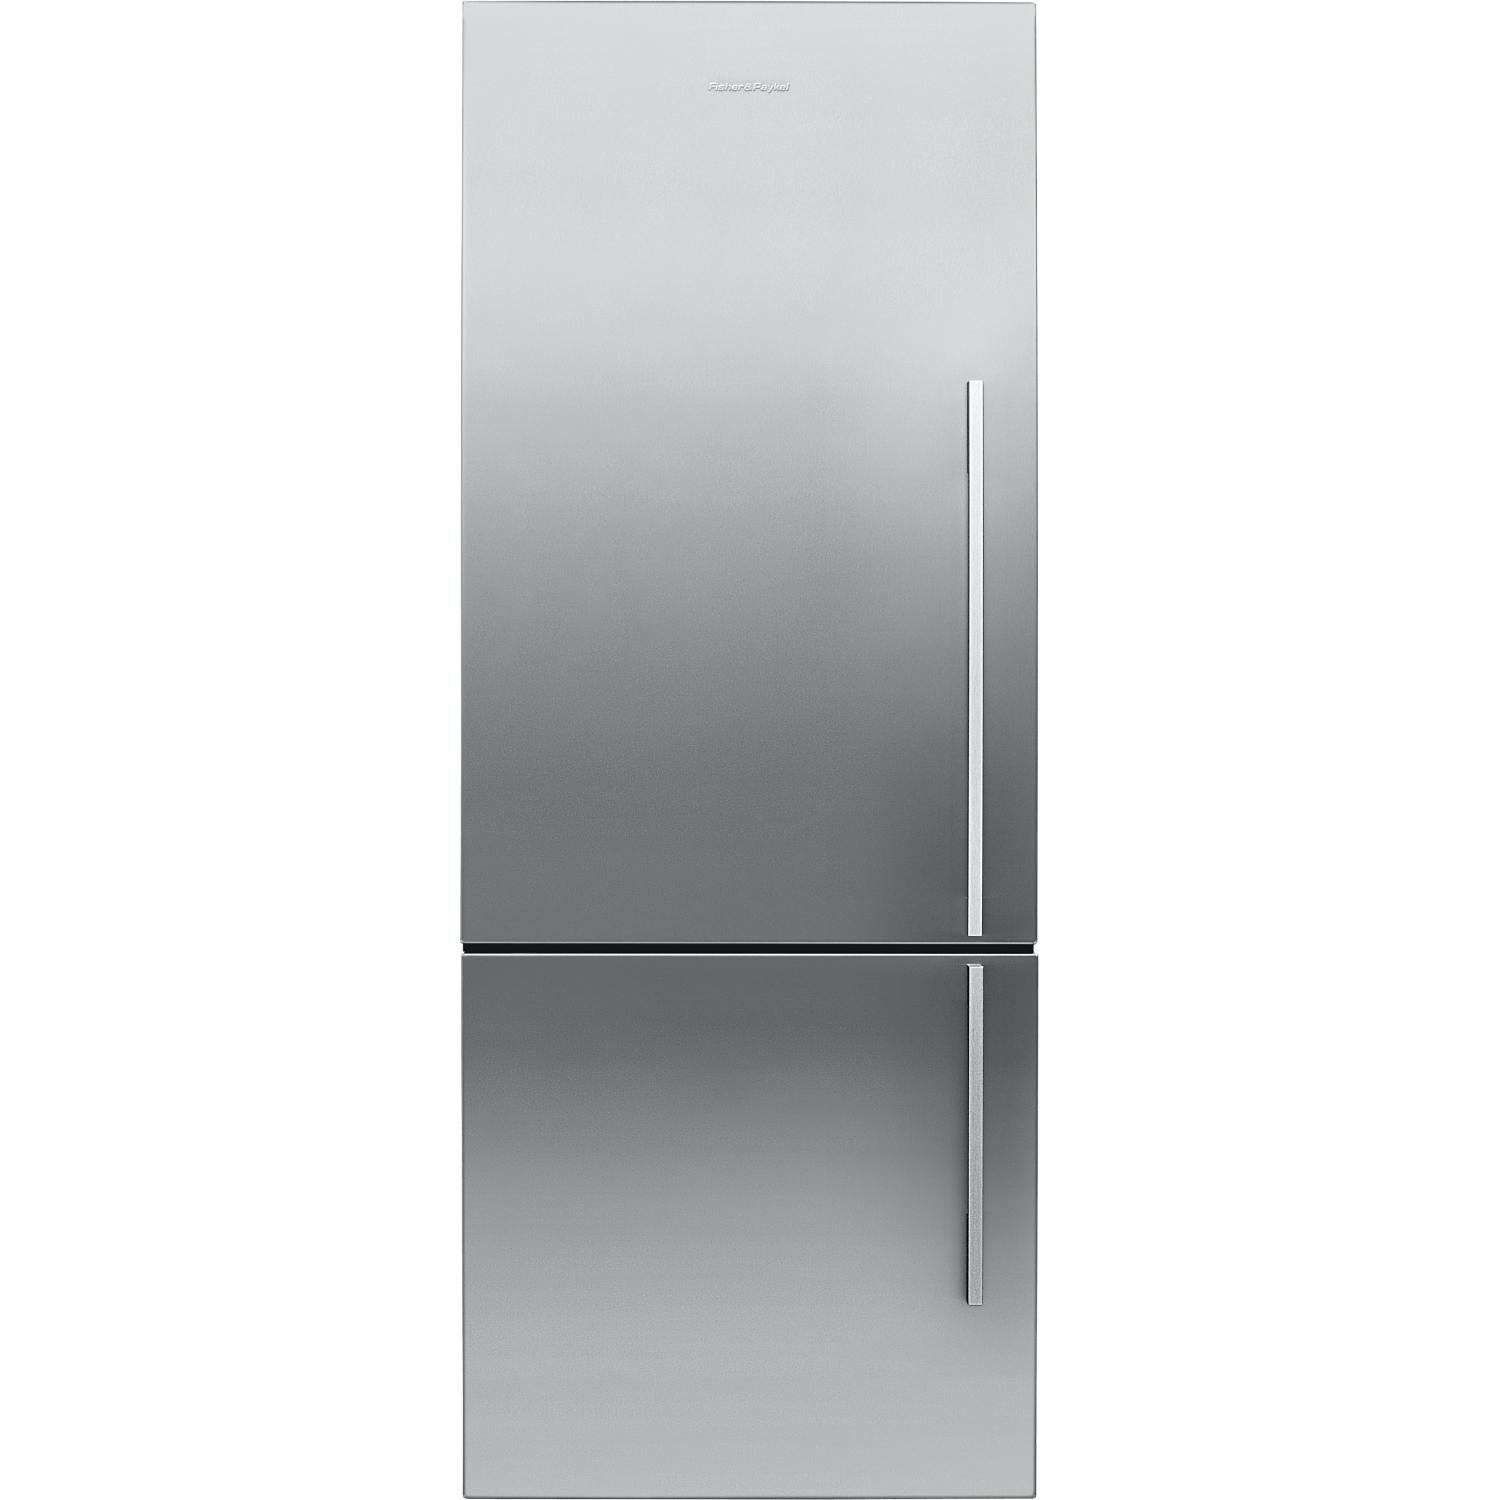 ft Fisher Paykel RF135BDLX4 25 13.4 cu Left Hinge Counter Depth Bottom Freezer Refrigerator With Glass Shelves ActiveSmart Technology LED Lighting and Humidity Control System in Stainless